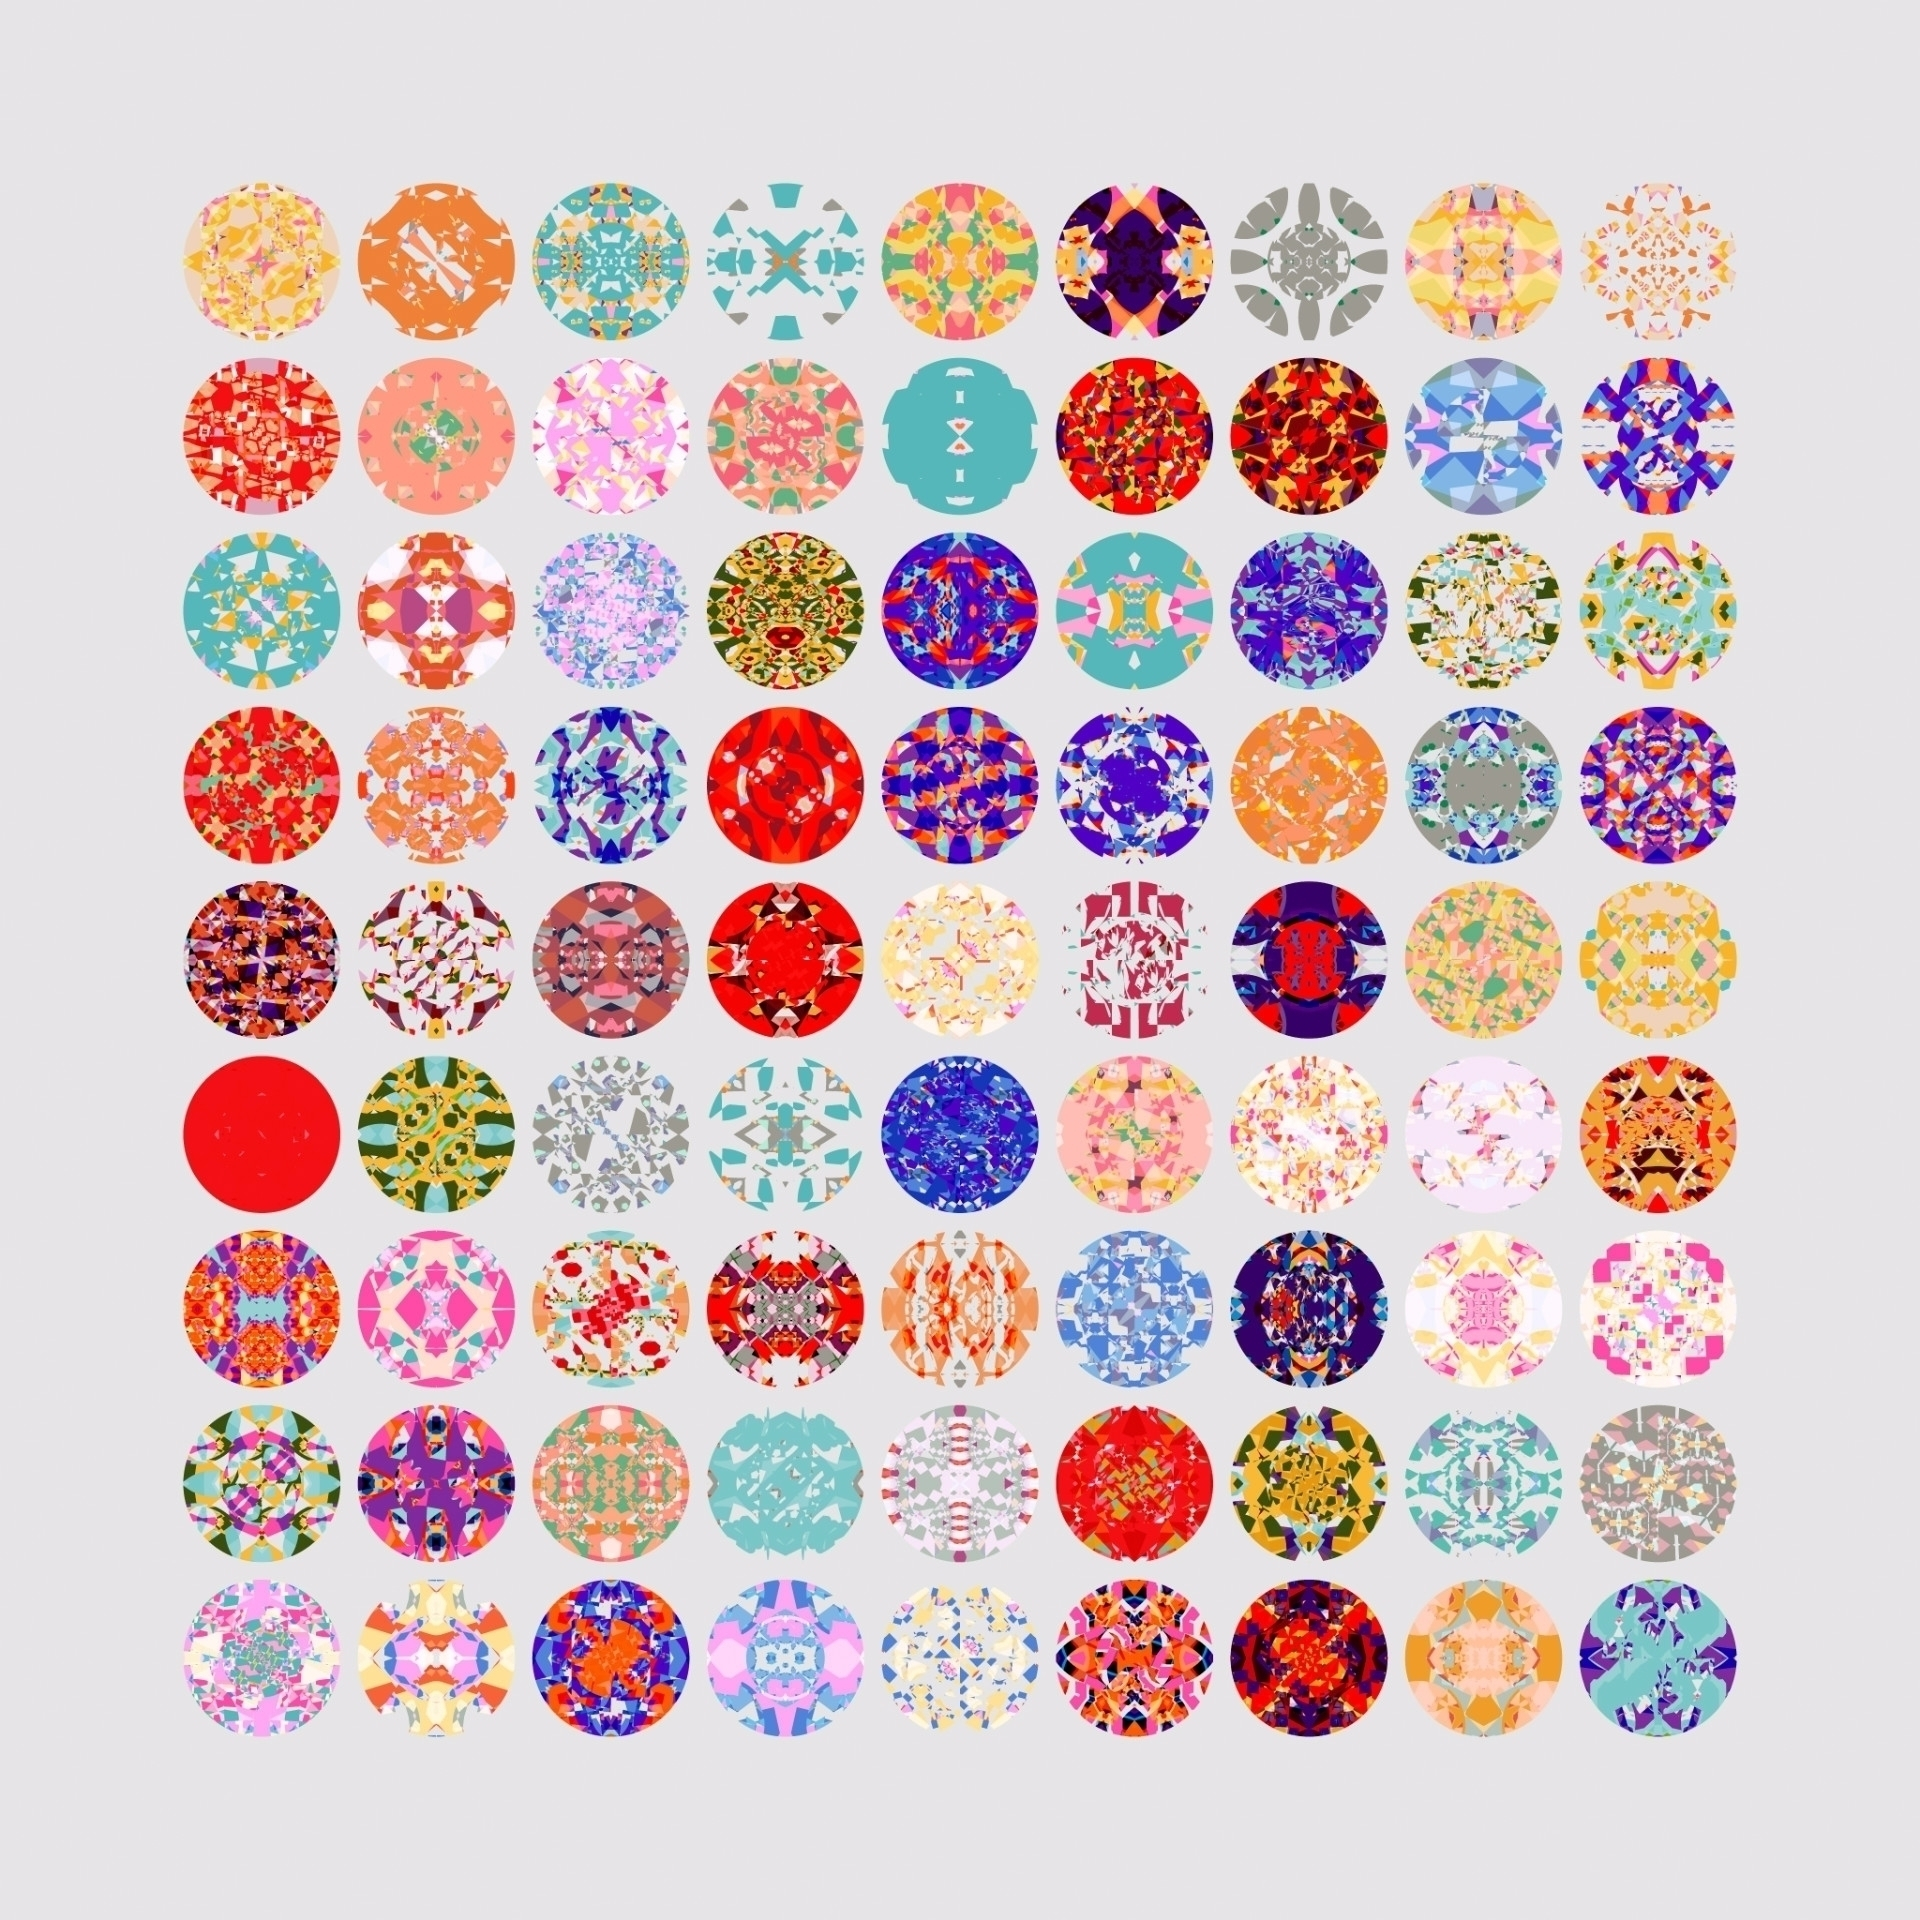 Procedural patterns created Fil - yuyatakeda | ello